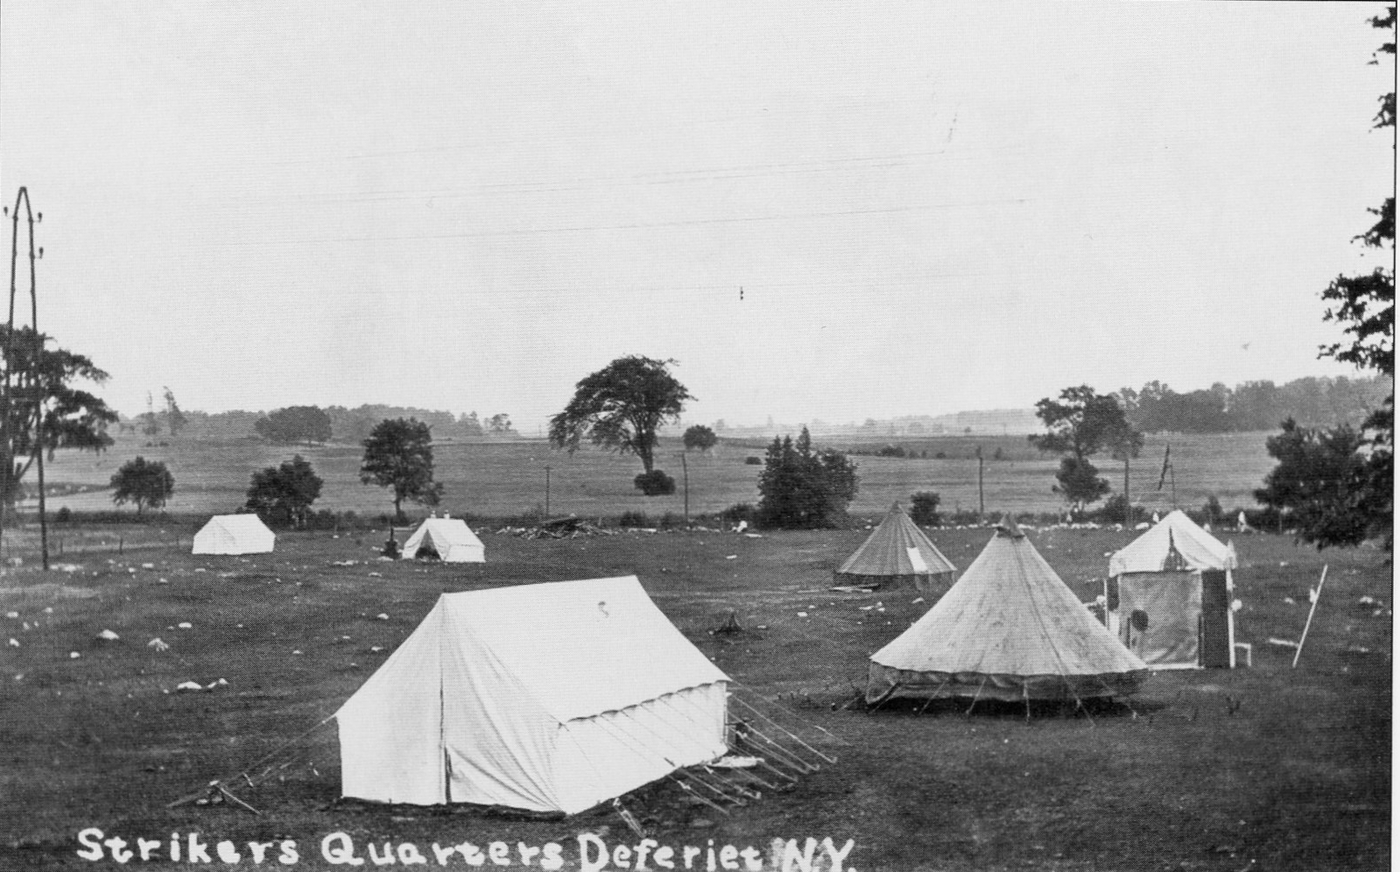 Tent City  set up for strikers who couldnu0027t find other accommodation c. 1915. & North Country on Strike: a paper company town goes union | NCPR News